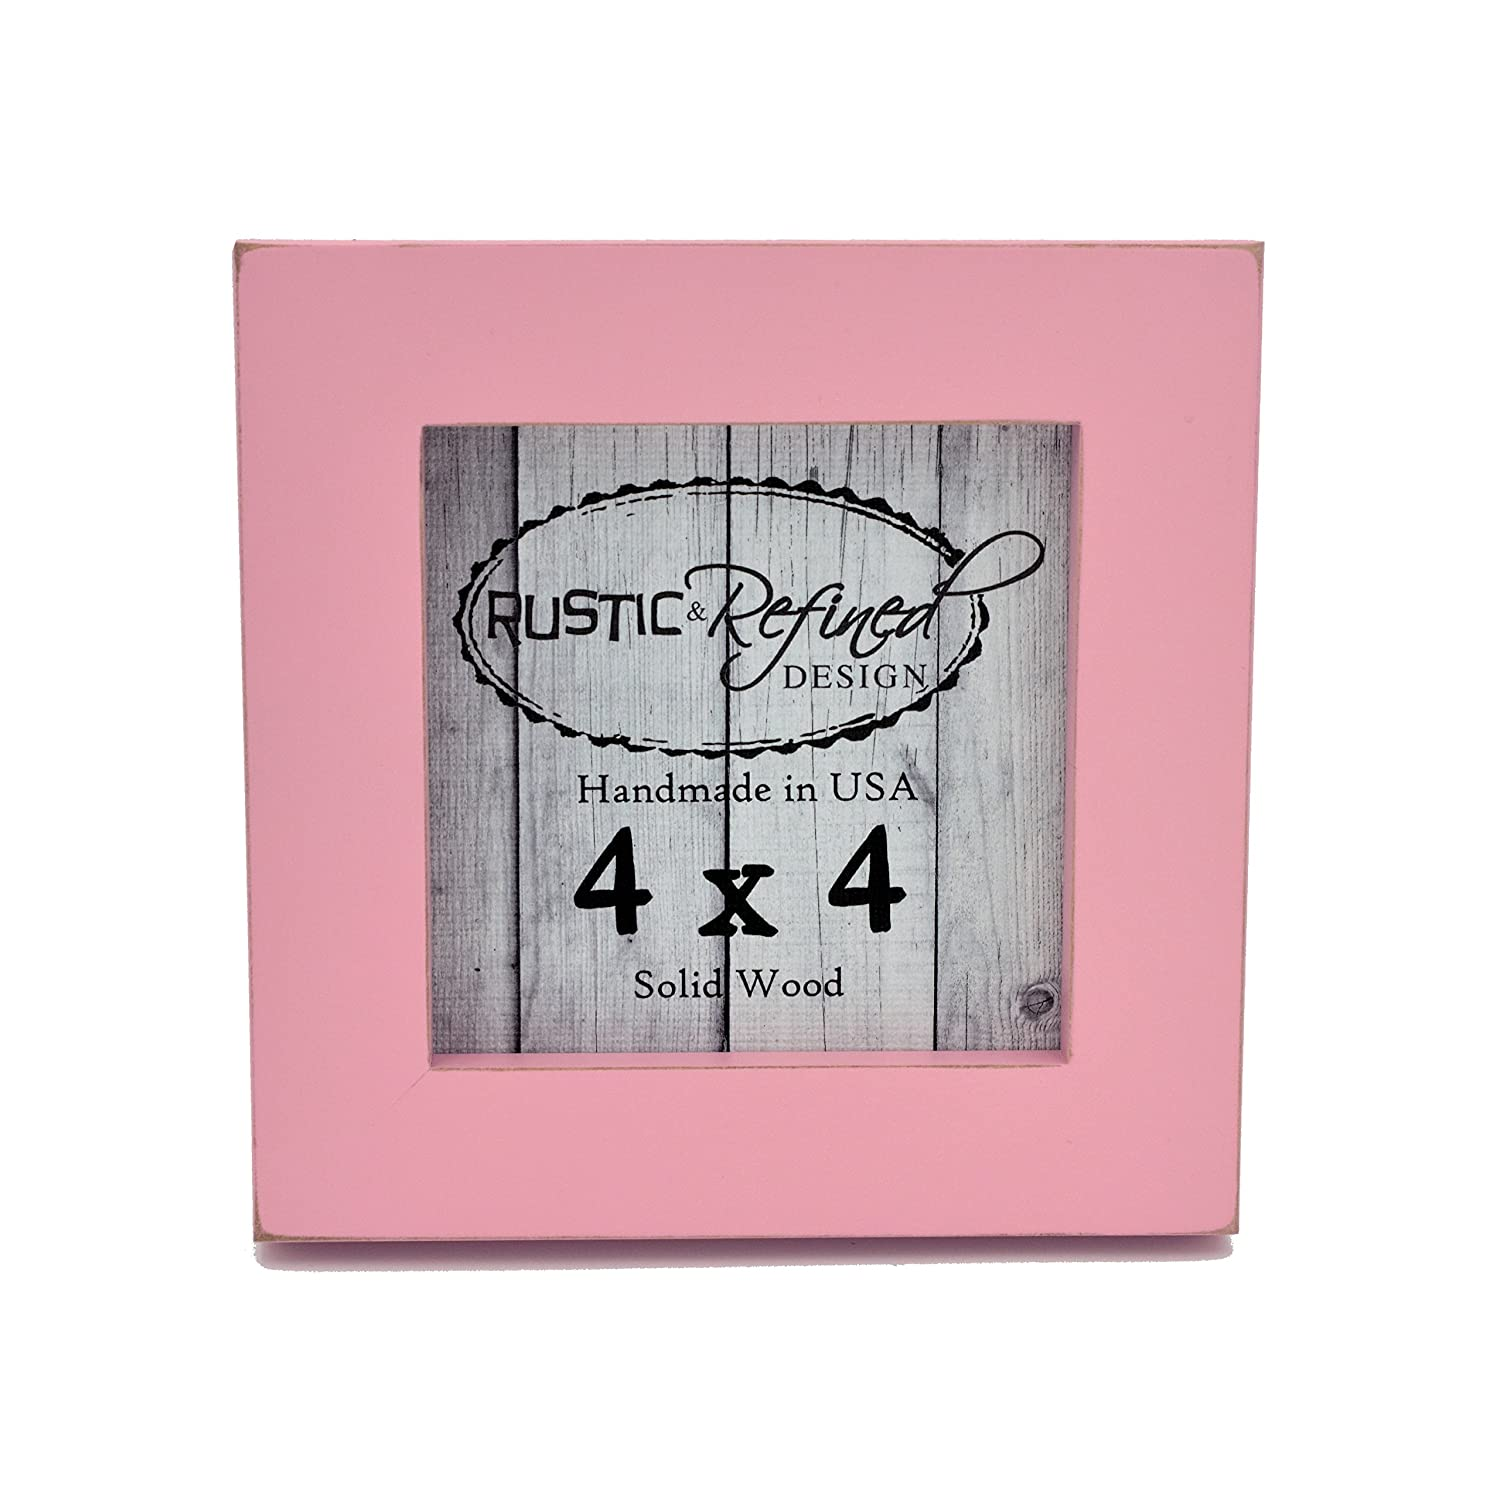 4x4 Solid Wood Made in USA Picture Frame with 1 Inch Border Gallery Collection Petal Pink Rustic and Refined Design 2030